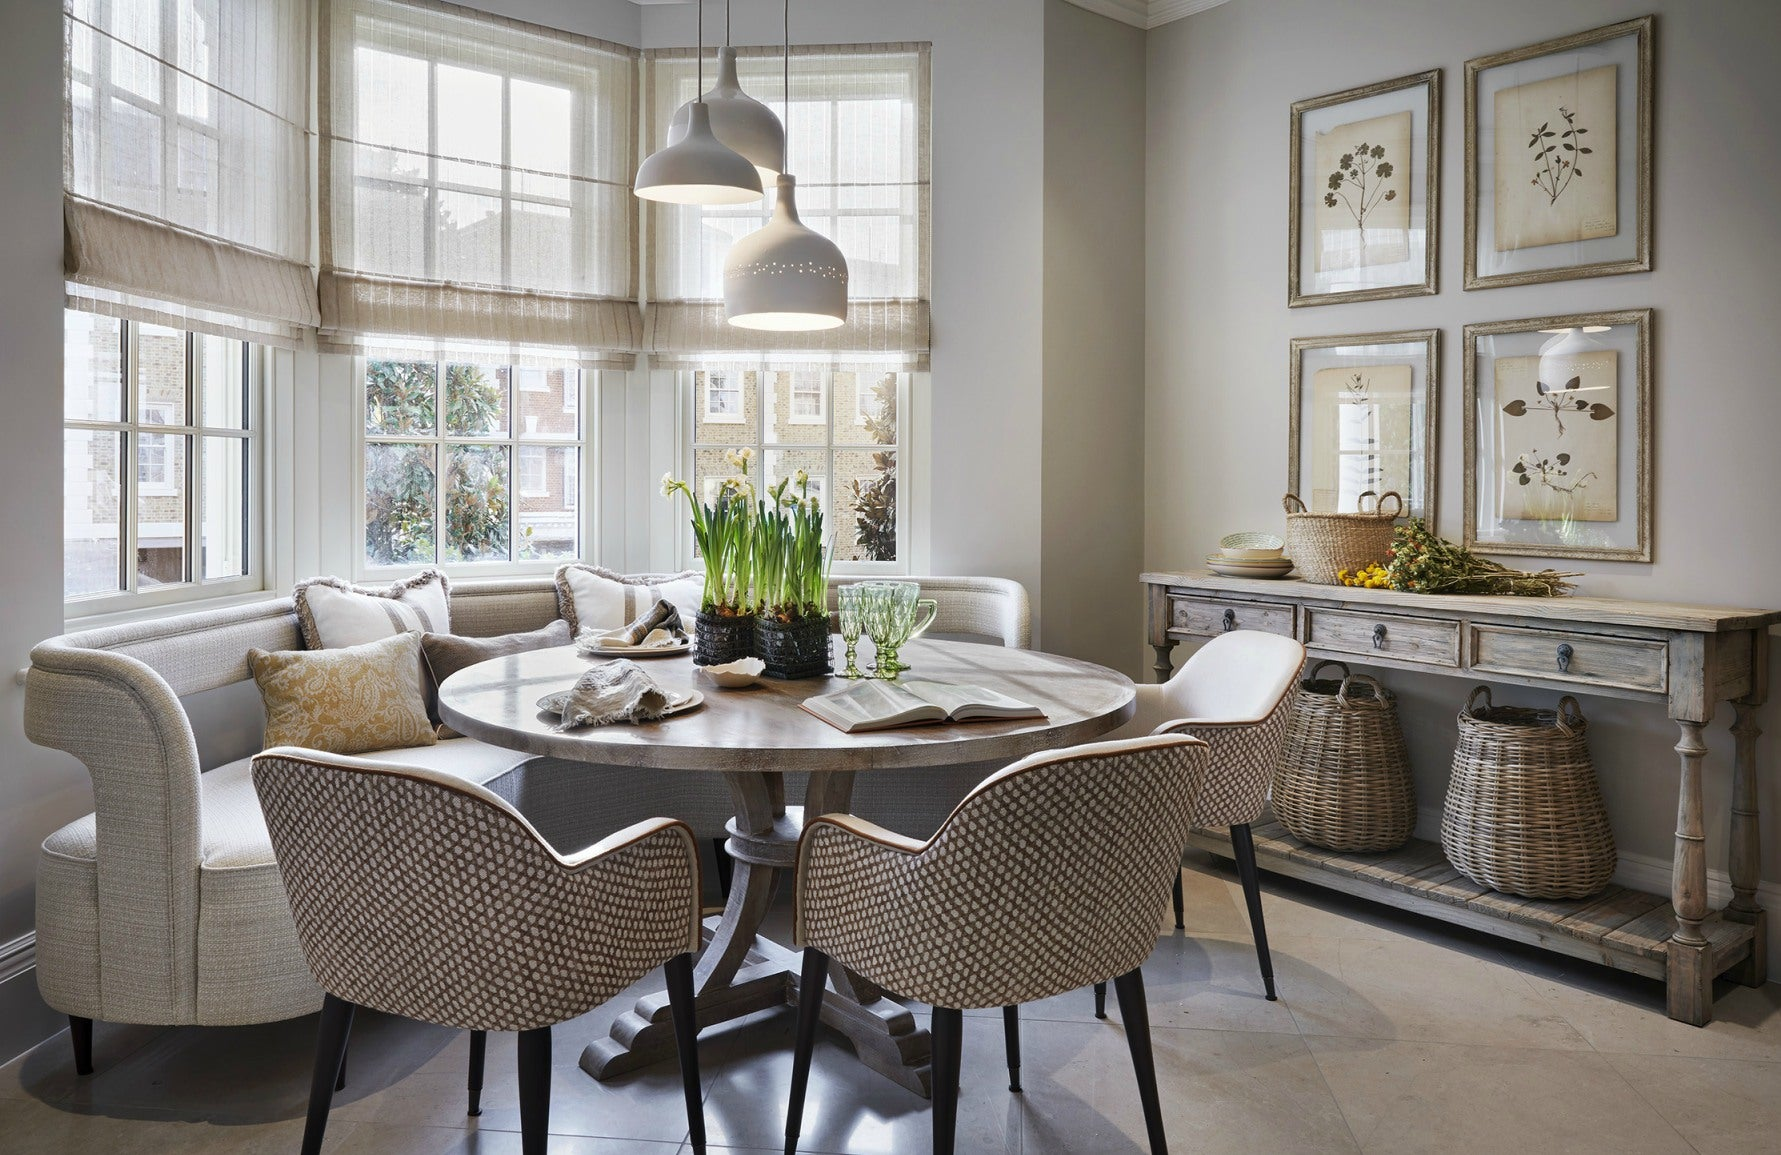 Luxury Dining Room Styles | Country Dining Room | Louise Bradley | Read more in The Luxurist at LuxDeco.com